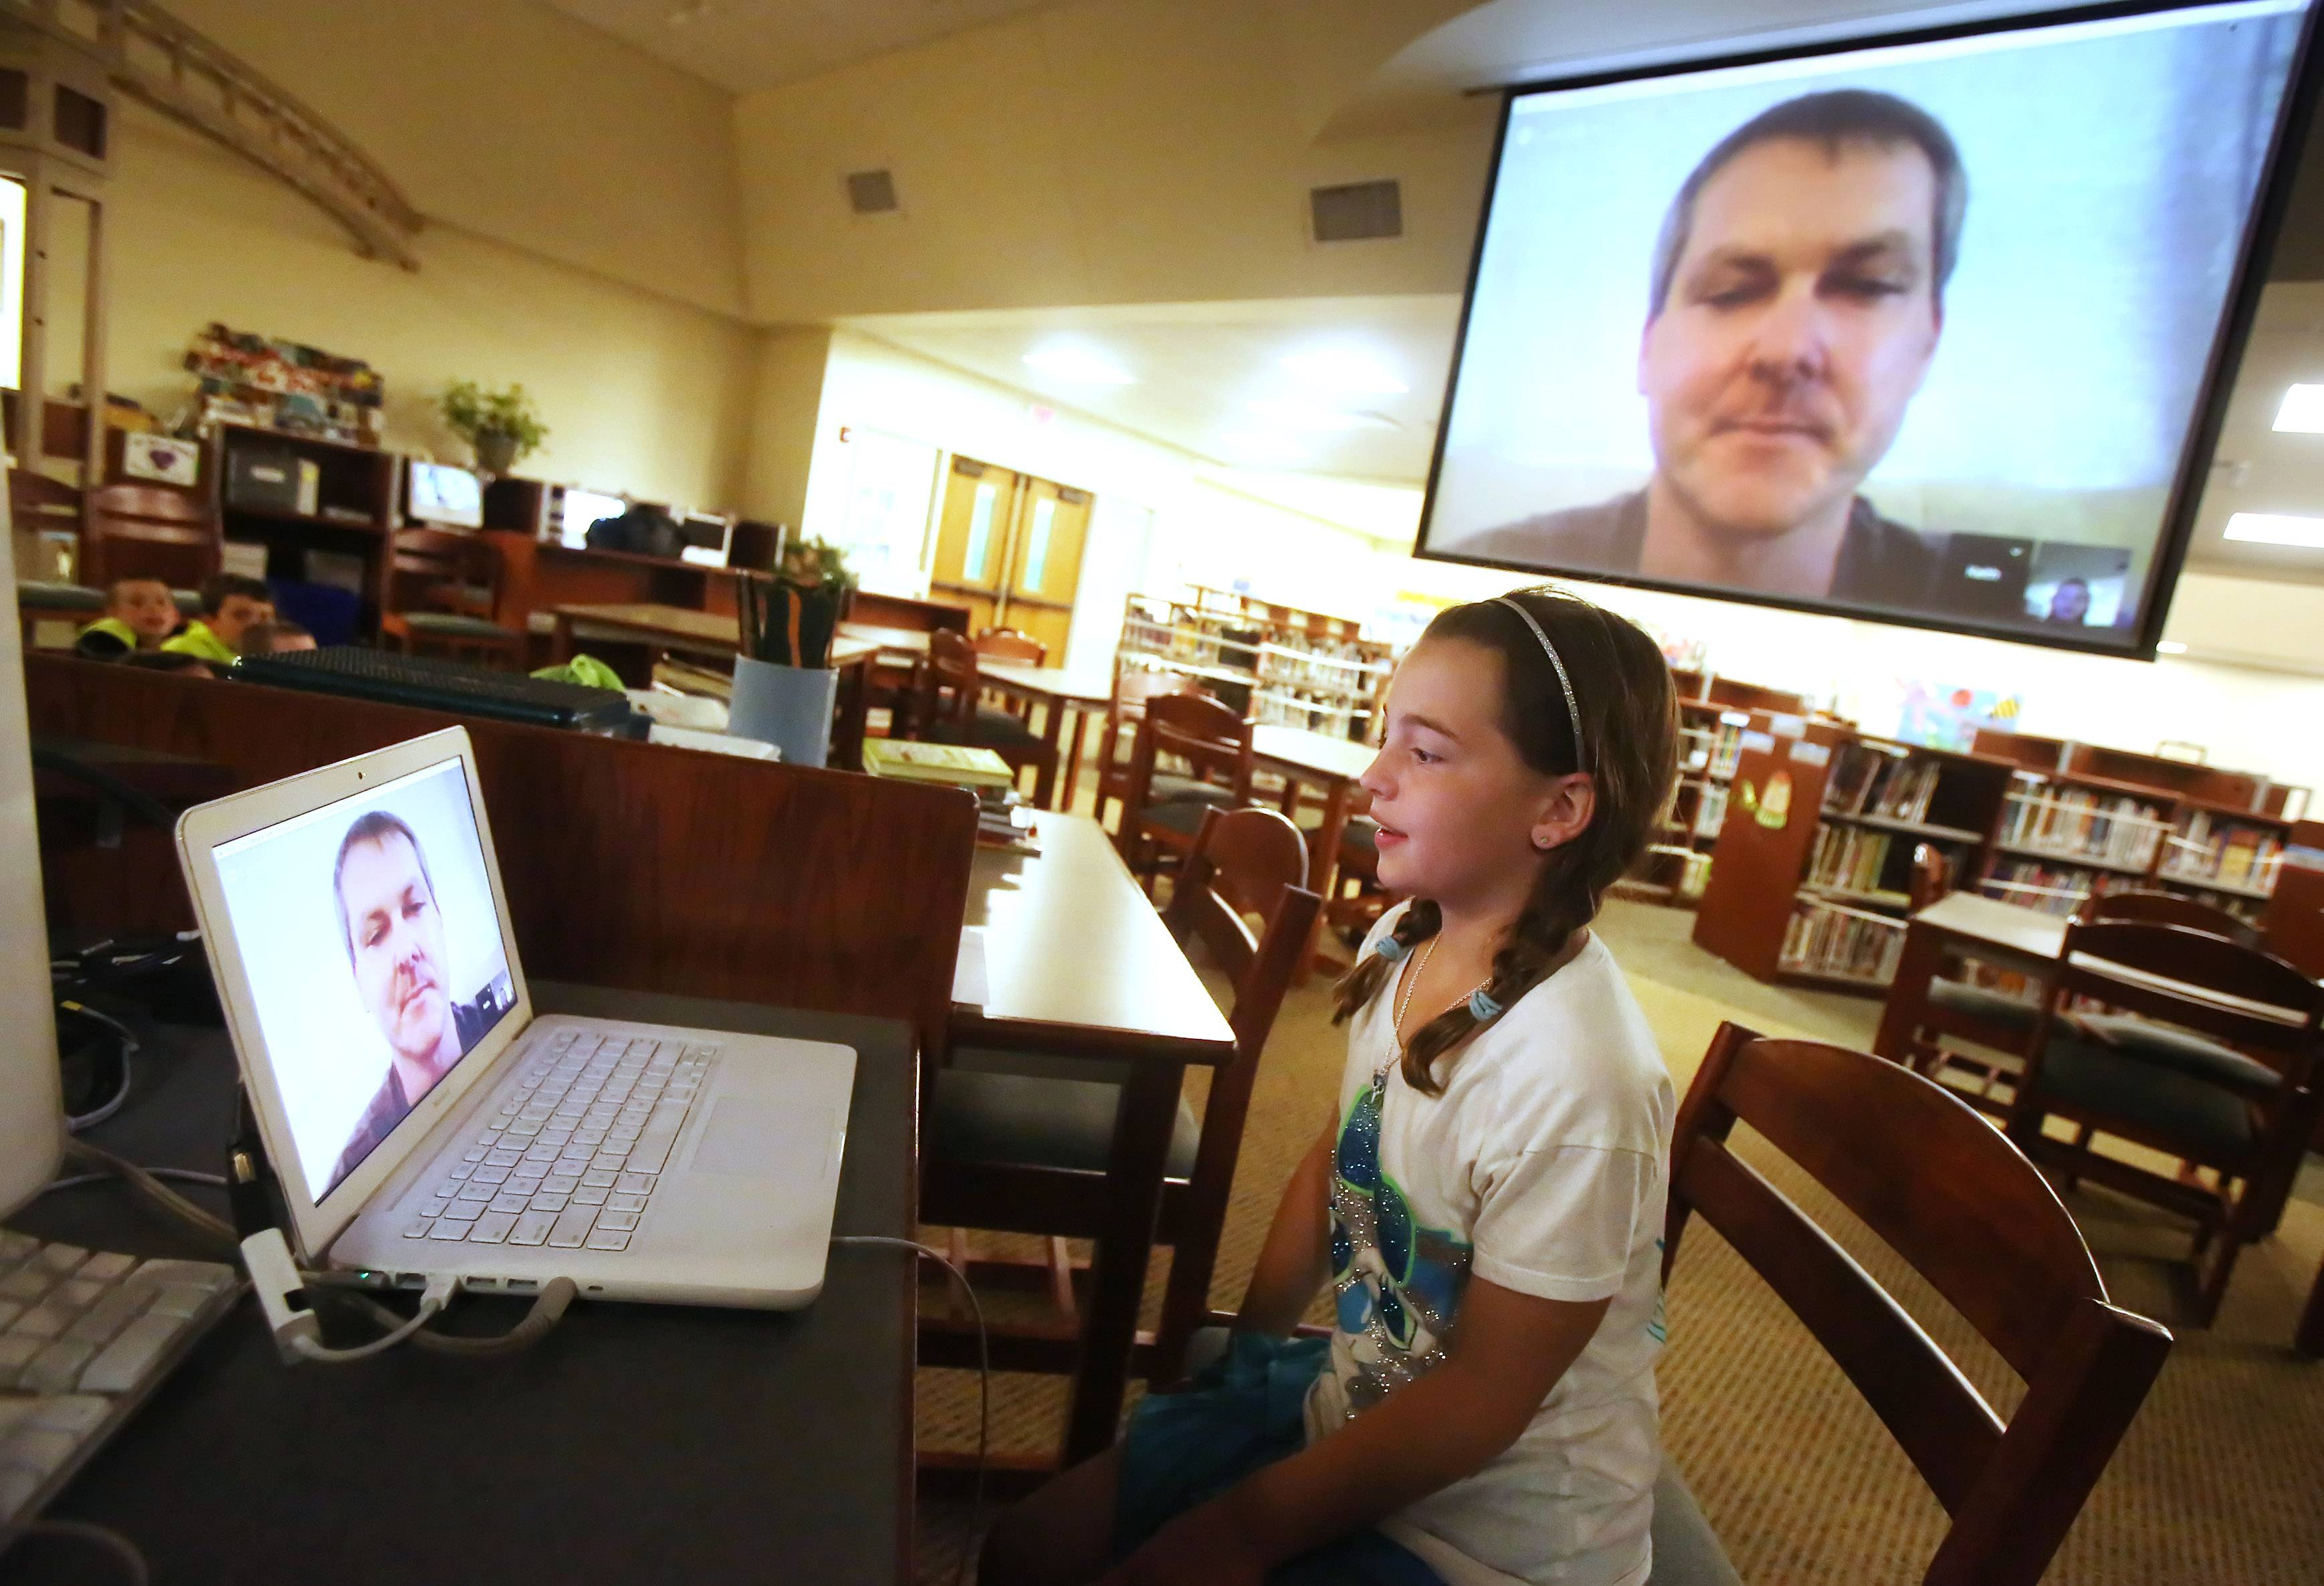 Fourth-grader Maddie Rupert asks a question Monday during a video chat with marine biologist Keith Fischer in the learning center at Butterfield School in Libertyville. The students talked with a Fischer, who works with the Fish and Wildlife Institute in St. Petersburg, Fla., as part of their lessons on ecosystems.